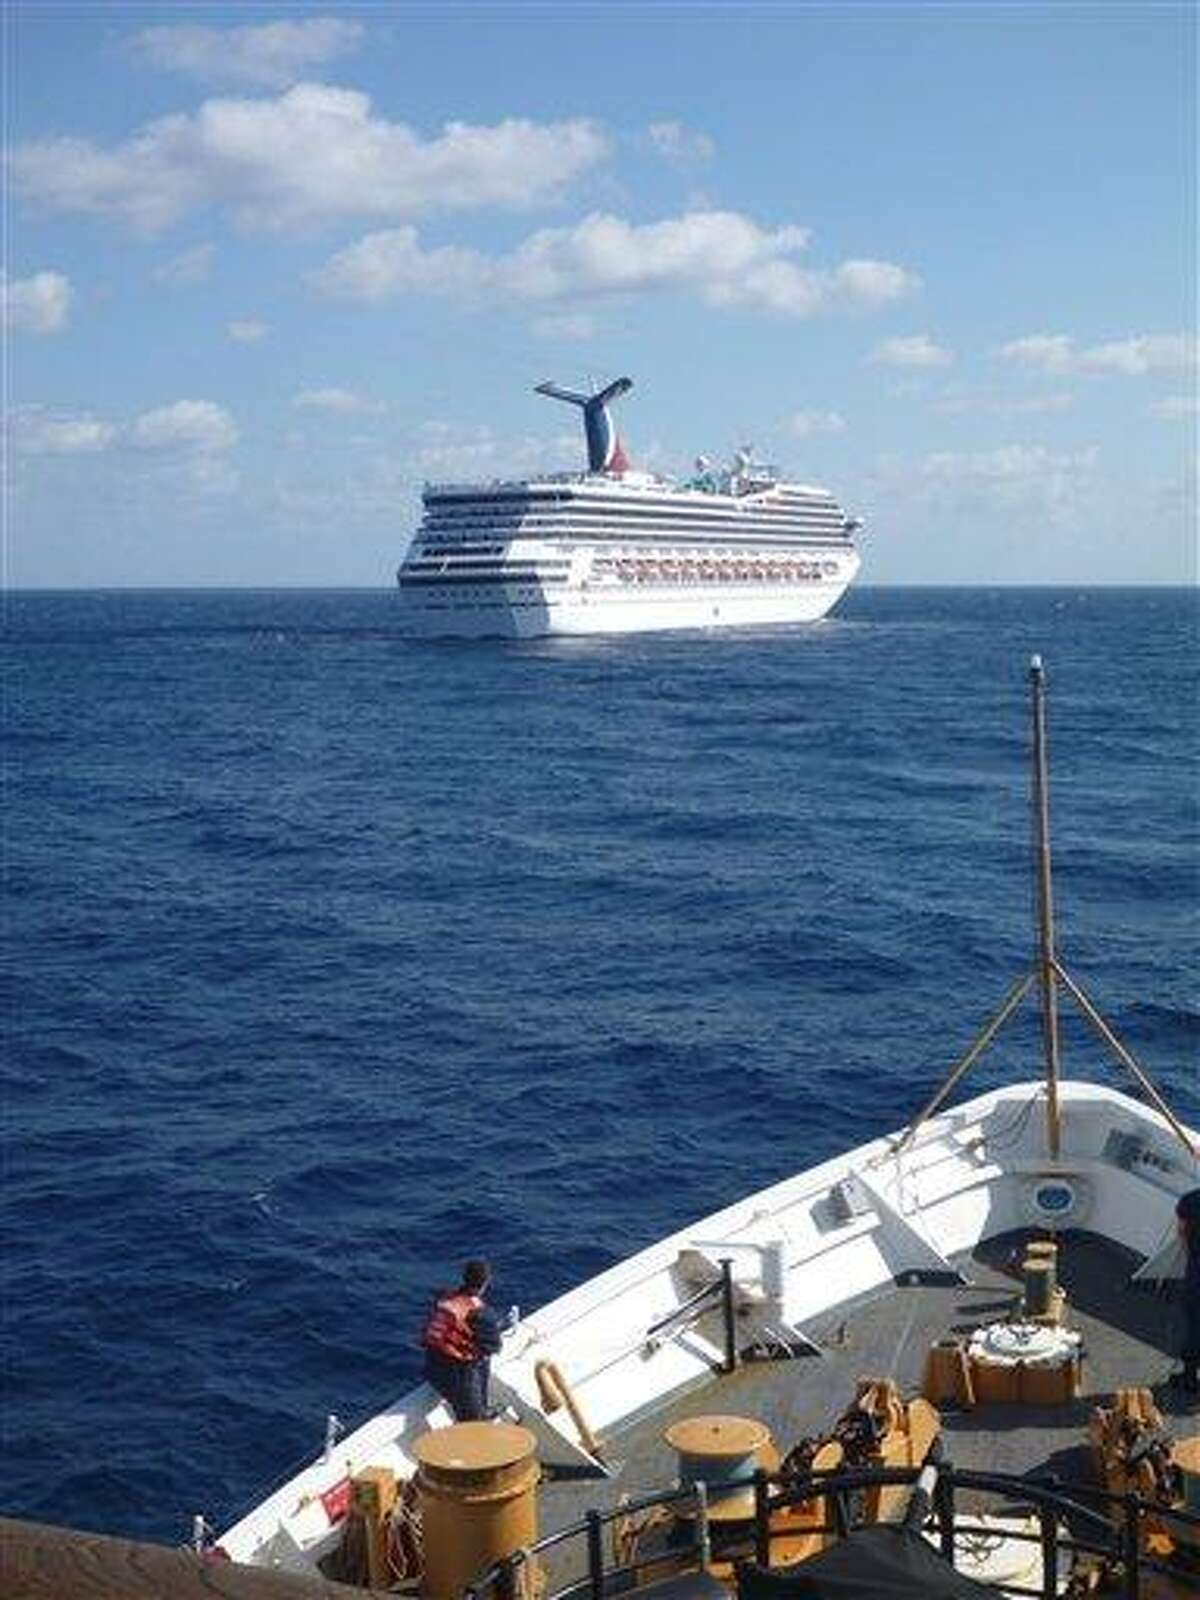 In this image released by the U.S. Coast Guard on Feb. 11, 2013, the Coast Guard Cutter Vigorous patrols near the cruise ship Carnival Triumph in the Gulf of Mexico, Feb. 11, 2013. The Carnival Triumph has been floating aimlessly about 150 miles off the Yucatan Peninsula since a fire erupted in the aft engine room early Sunday, knocking out the ship's propulsion system. No one was injured and the fire was extinguished. AP Photo/U.S. Coast Guard- Lt. Cmdr. Paul McConnell